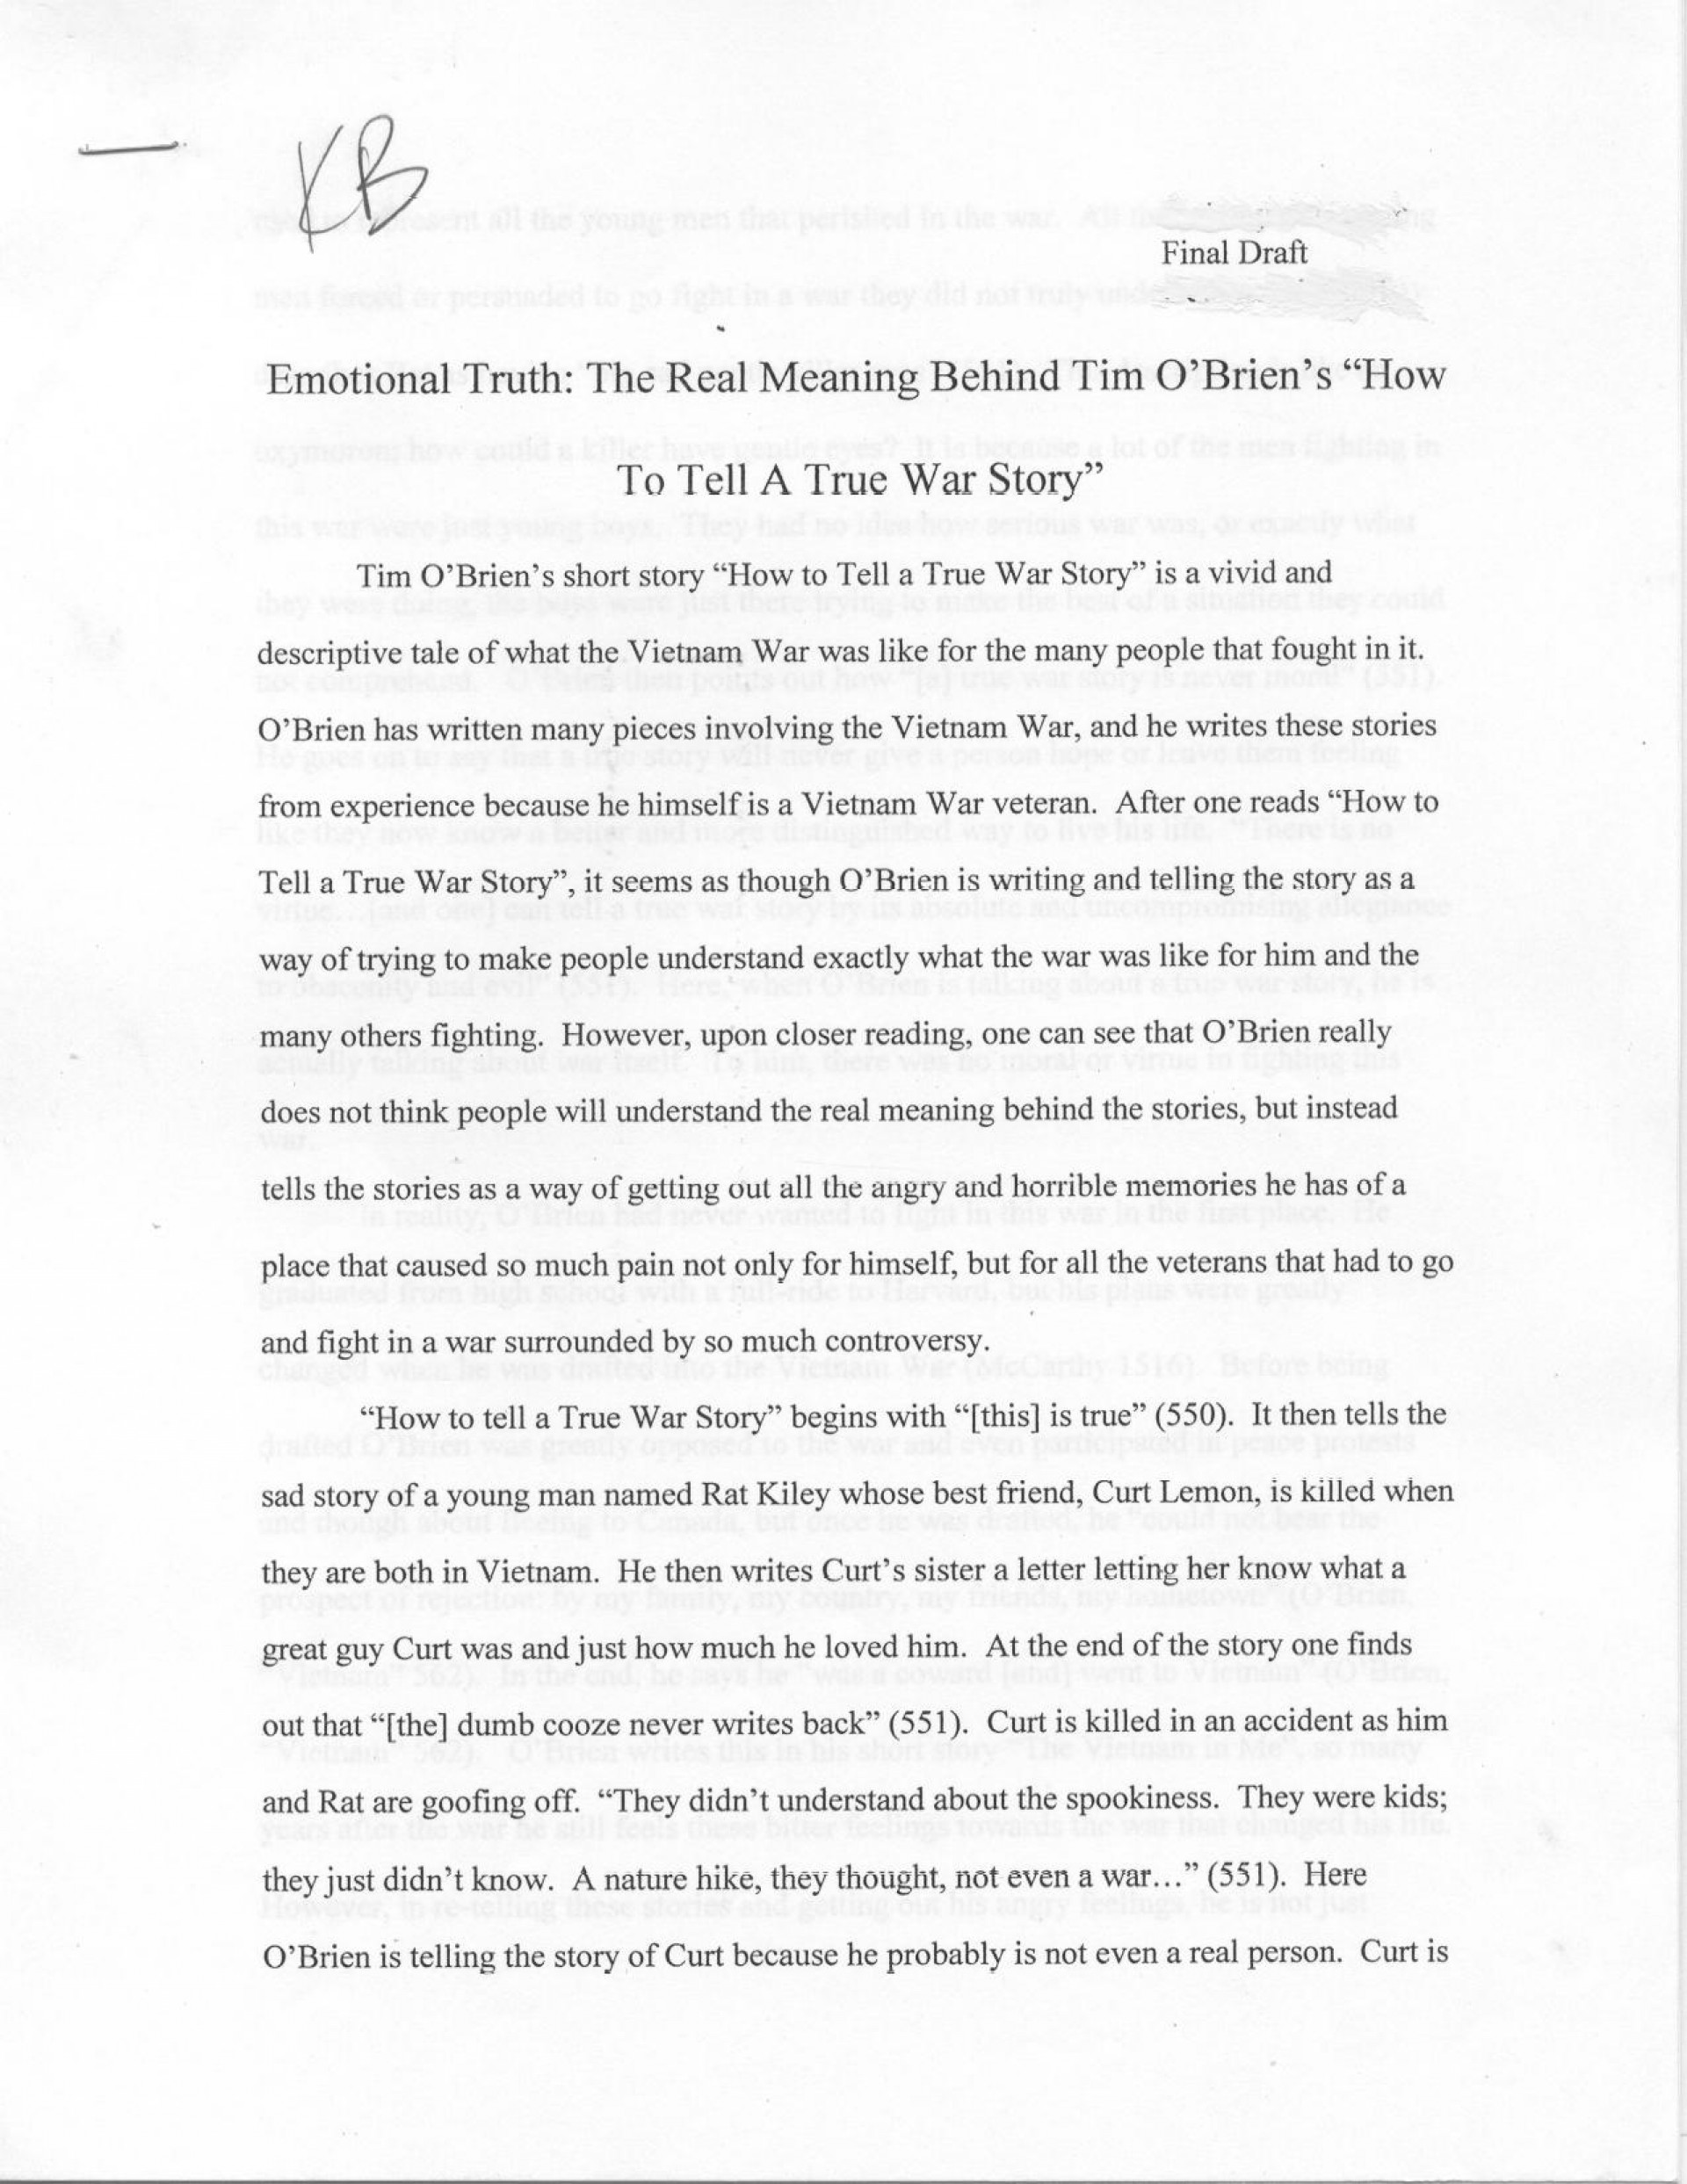 004 Ess2ex1 1 Page Essay Best Rubric One Format Example Apa How Many Words 1920